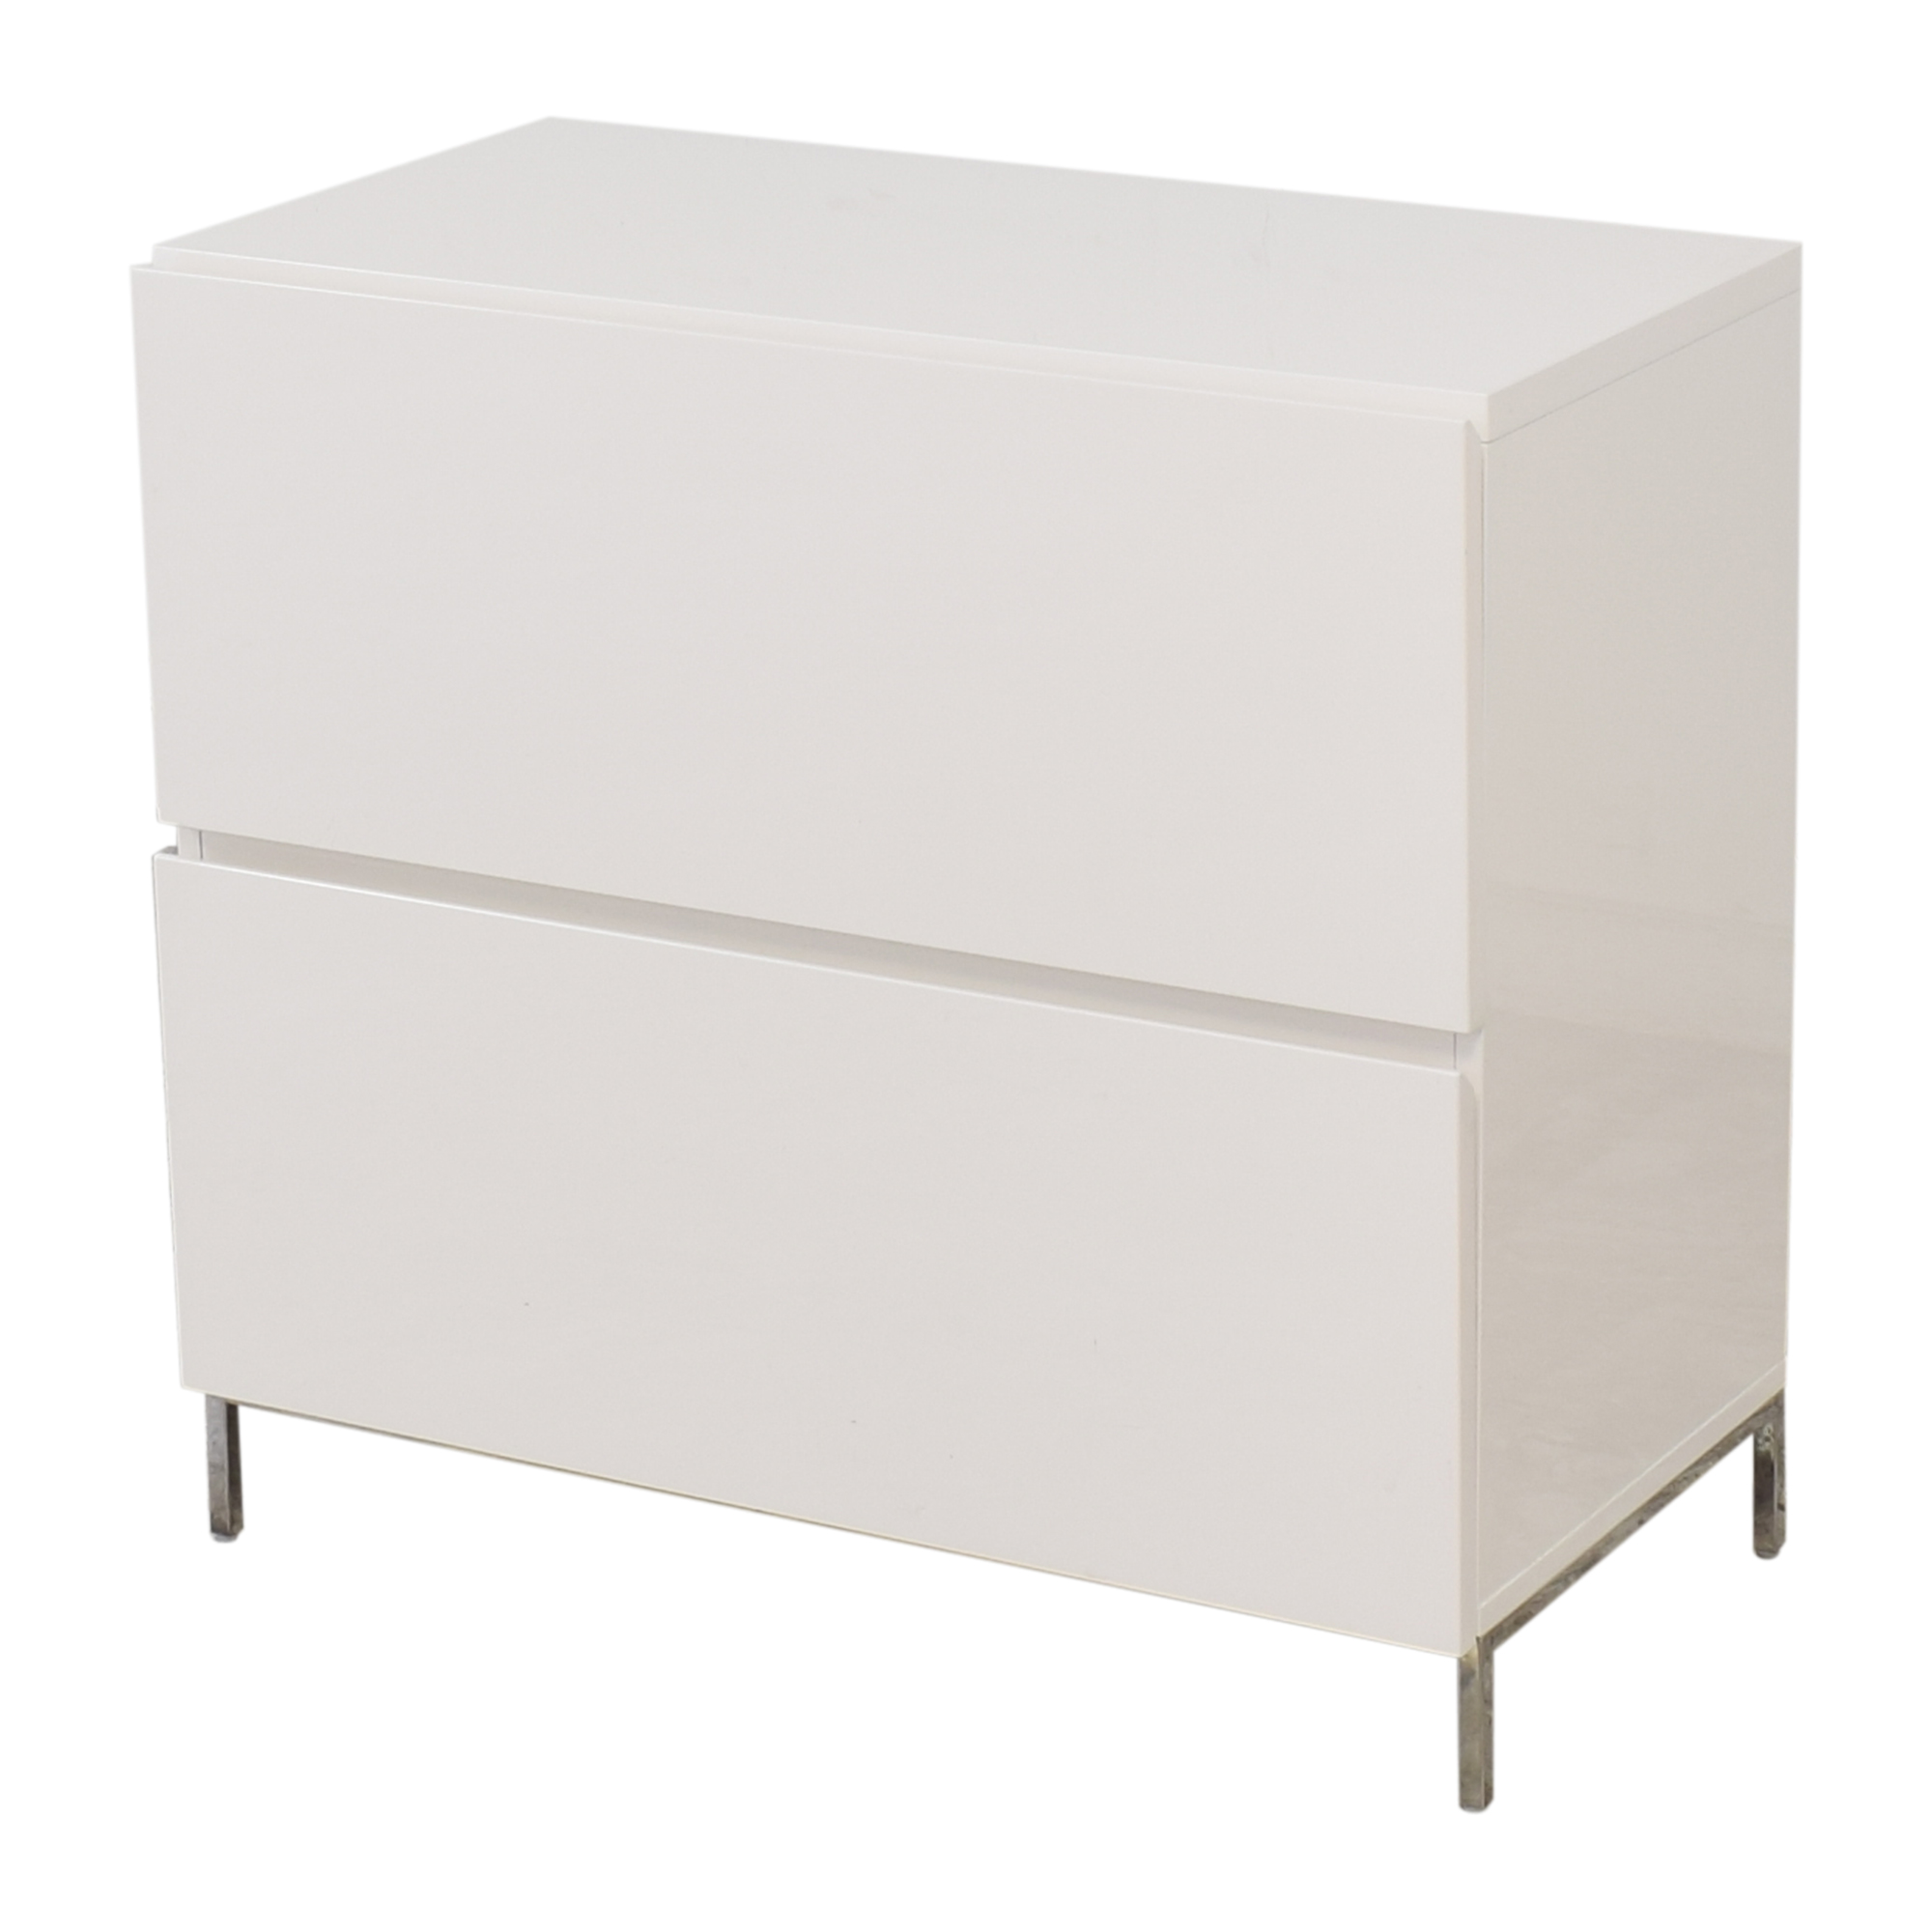 West Elm West Elm Lacquer Storage Modular Lateral File Cabinet Filing & Bins